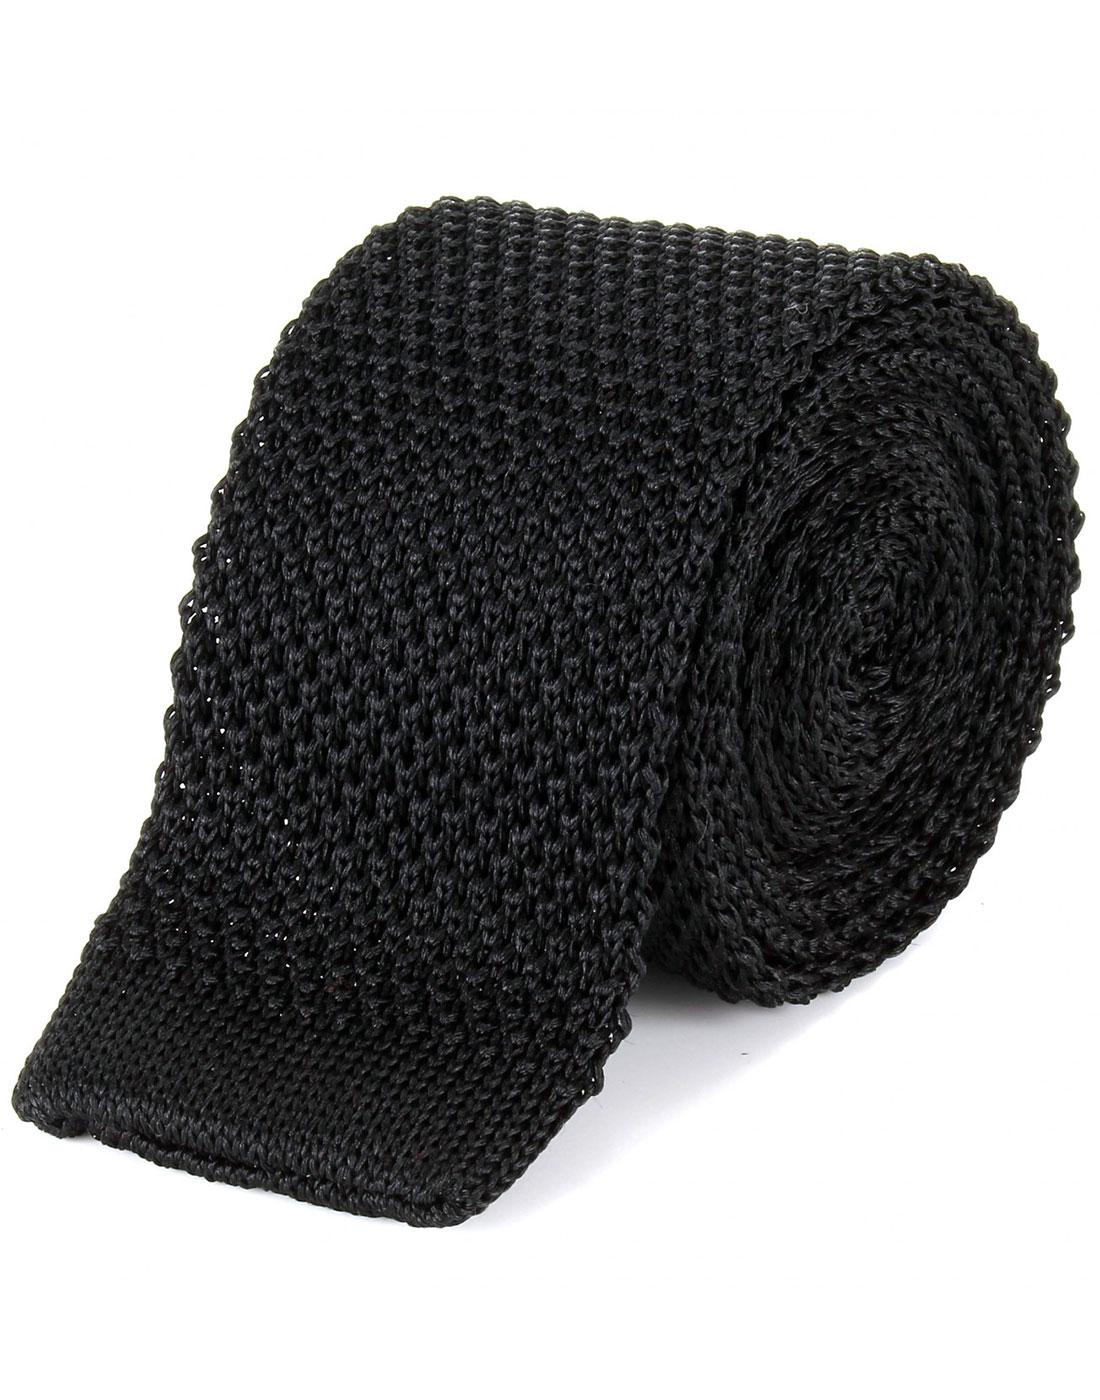 TOOTAL Retro Mod Knitted Silk Tie in Black